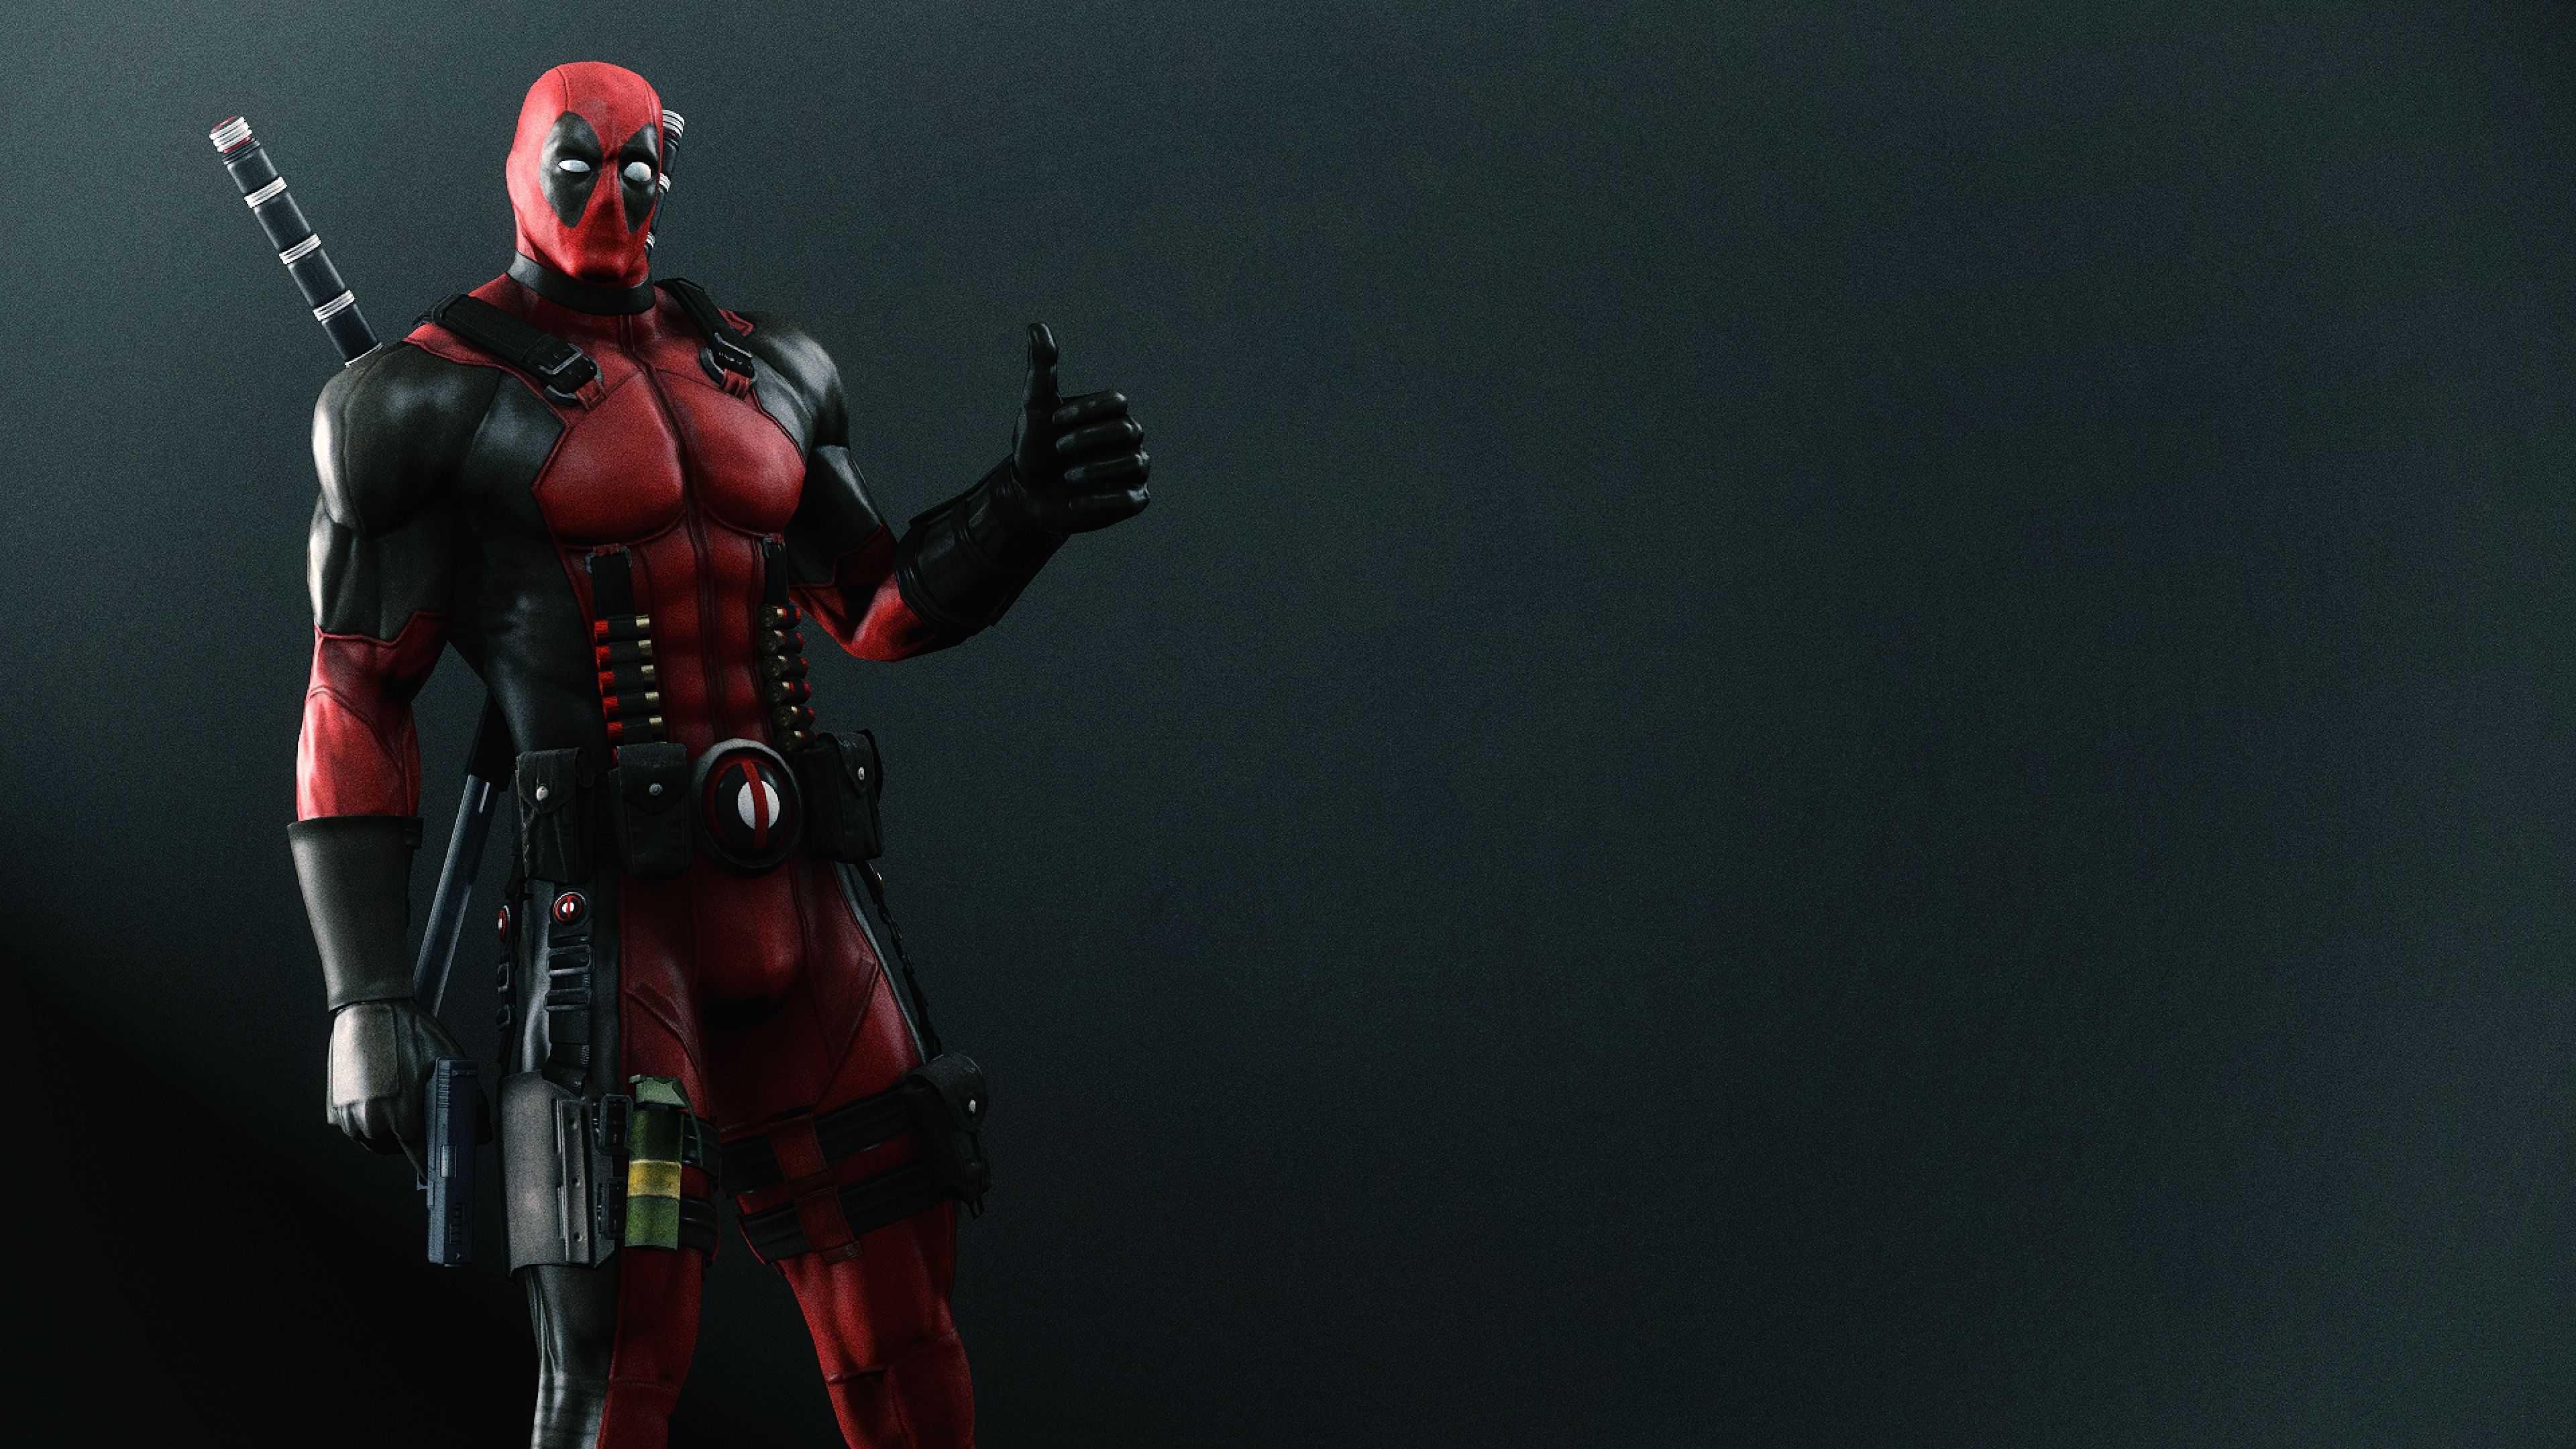 Deadpool Wallpapers HD Group  73   4K Ultra HD Deadpool Wallpapers HD  Desktop Backgrounds 3840x2160